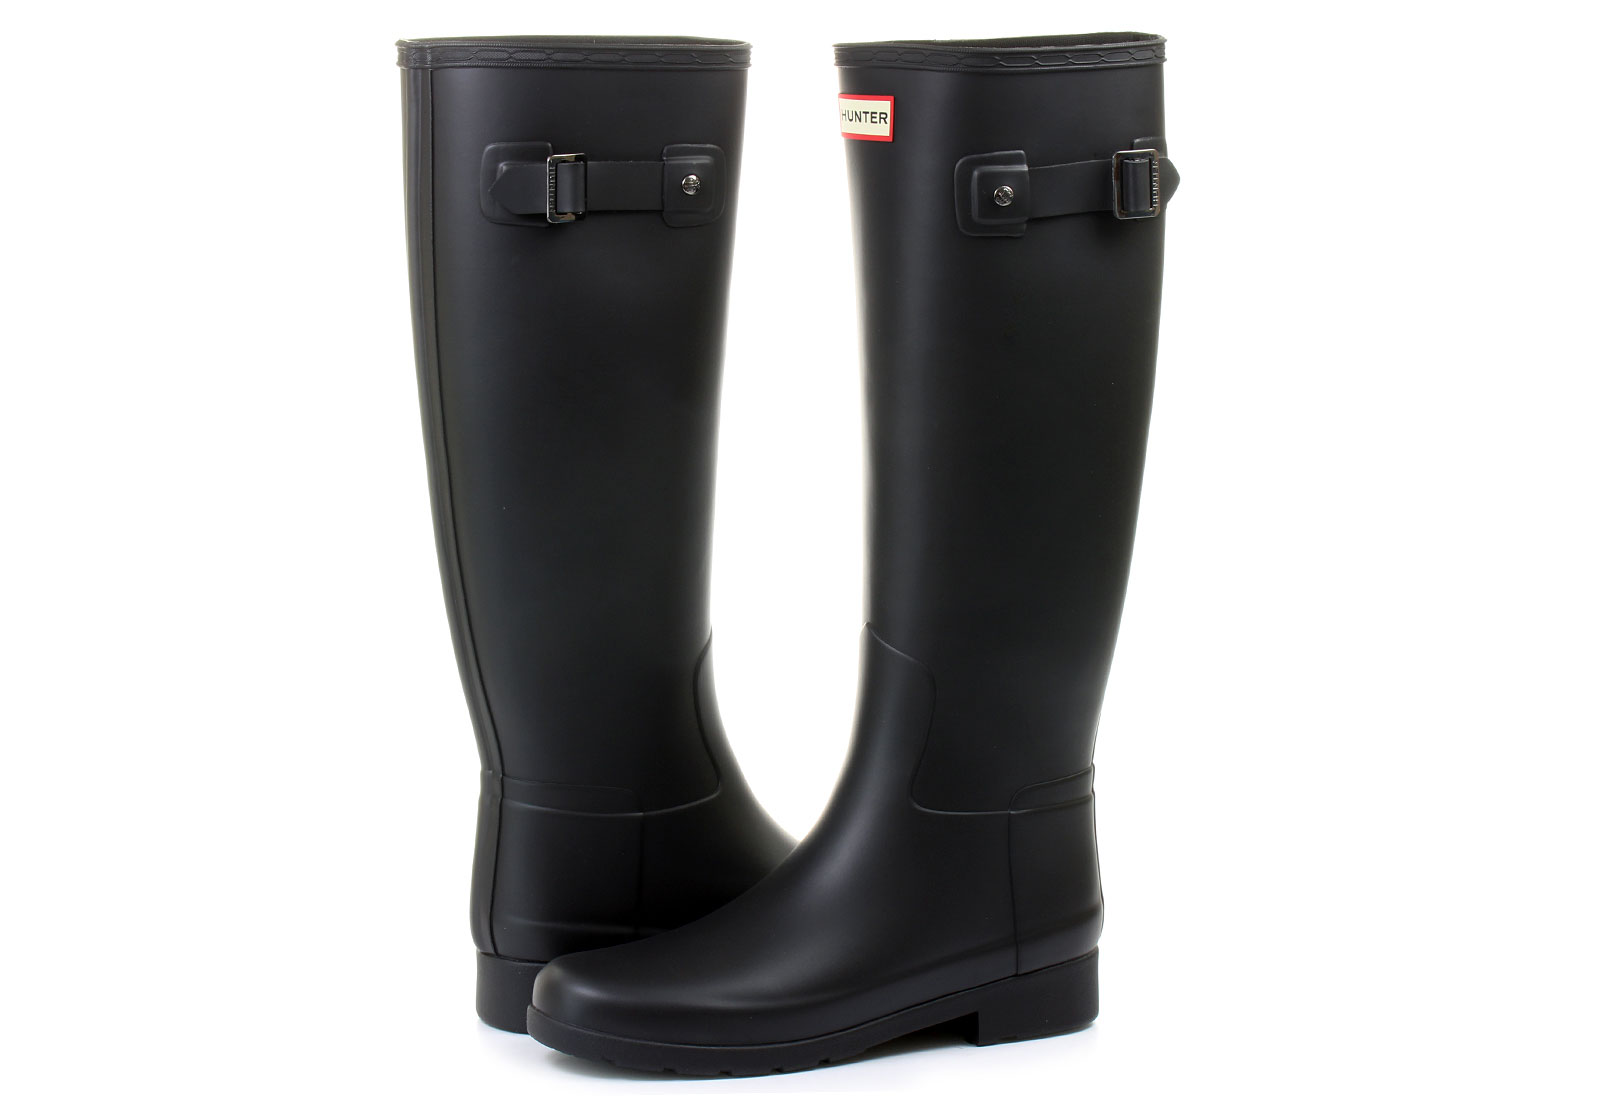 07bab8749 Hunter Boots - Original Refined - t1071rma-blk - Online shop for ...